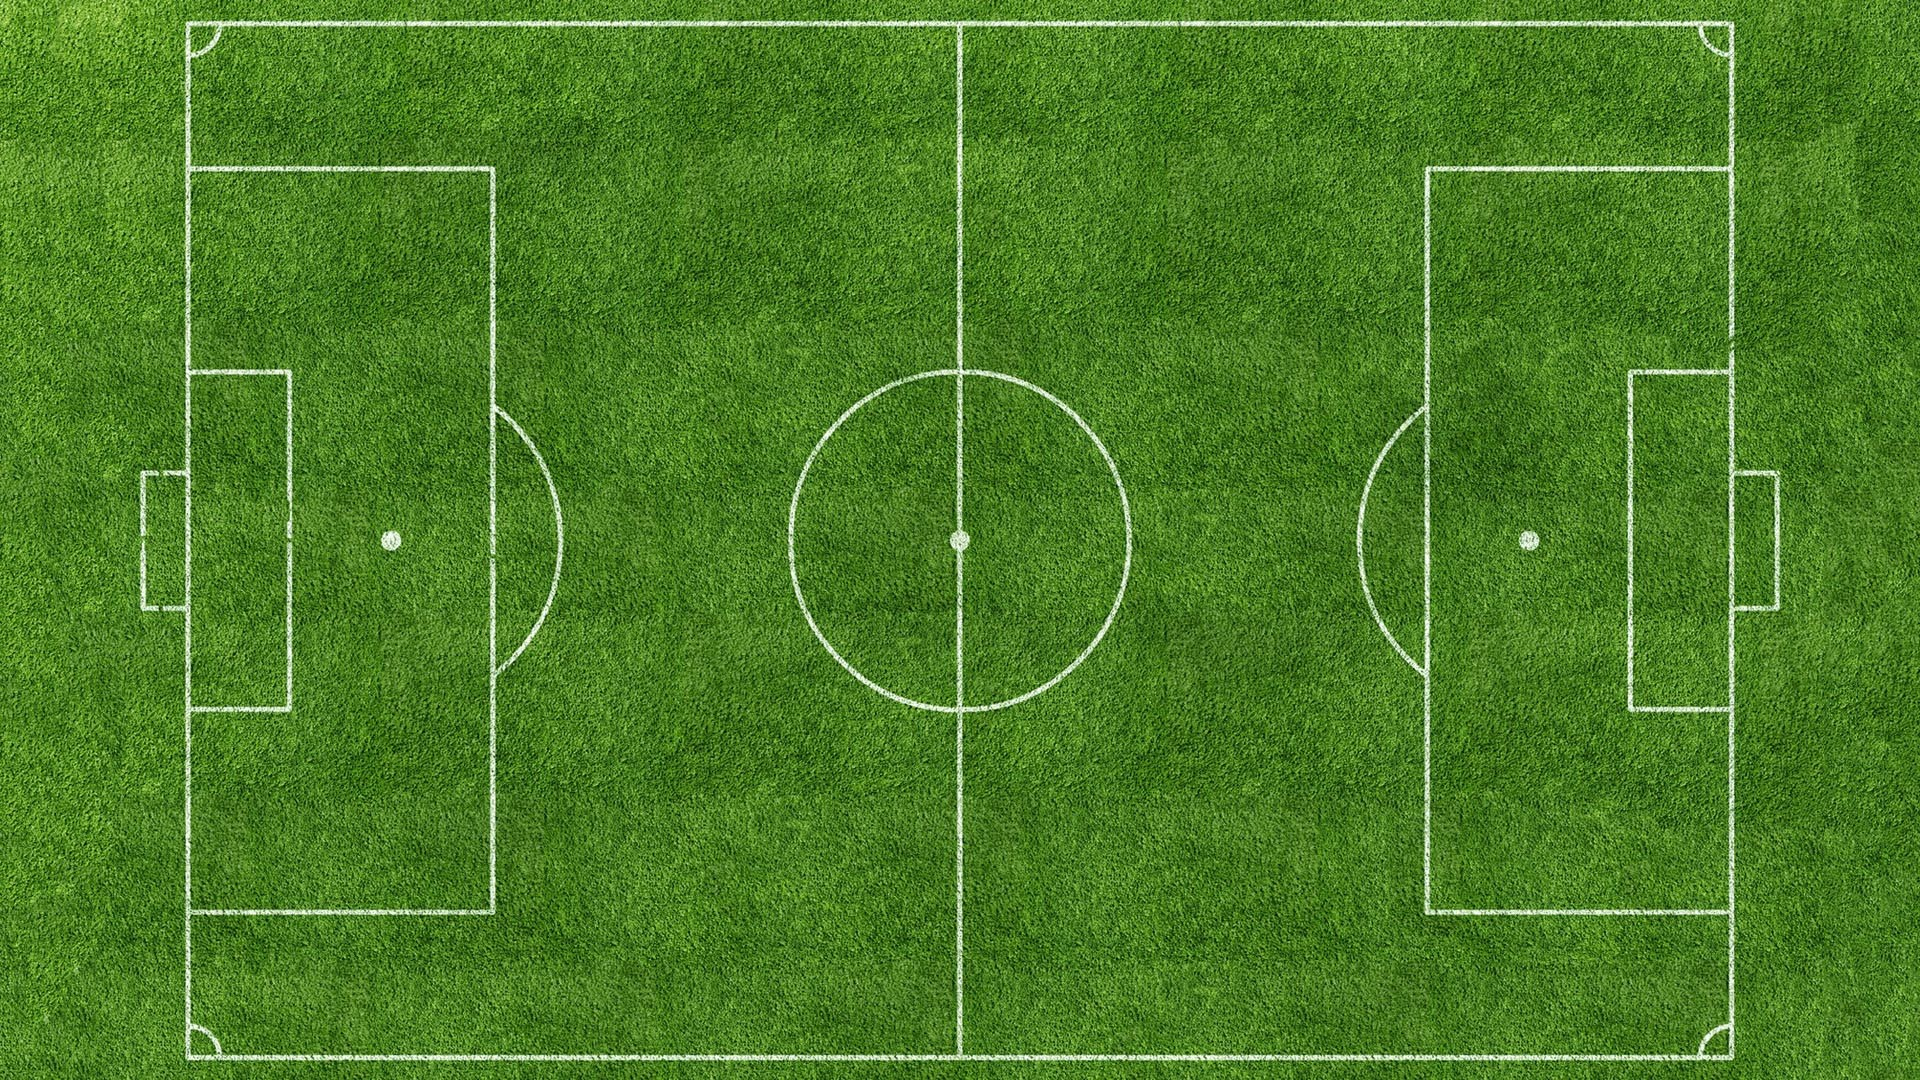 1920x1080 Soccer Field HD Wallpaper. « »